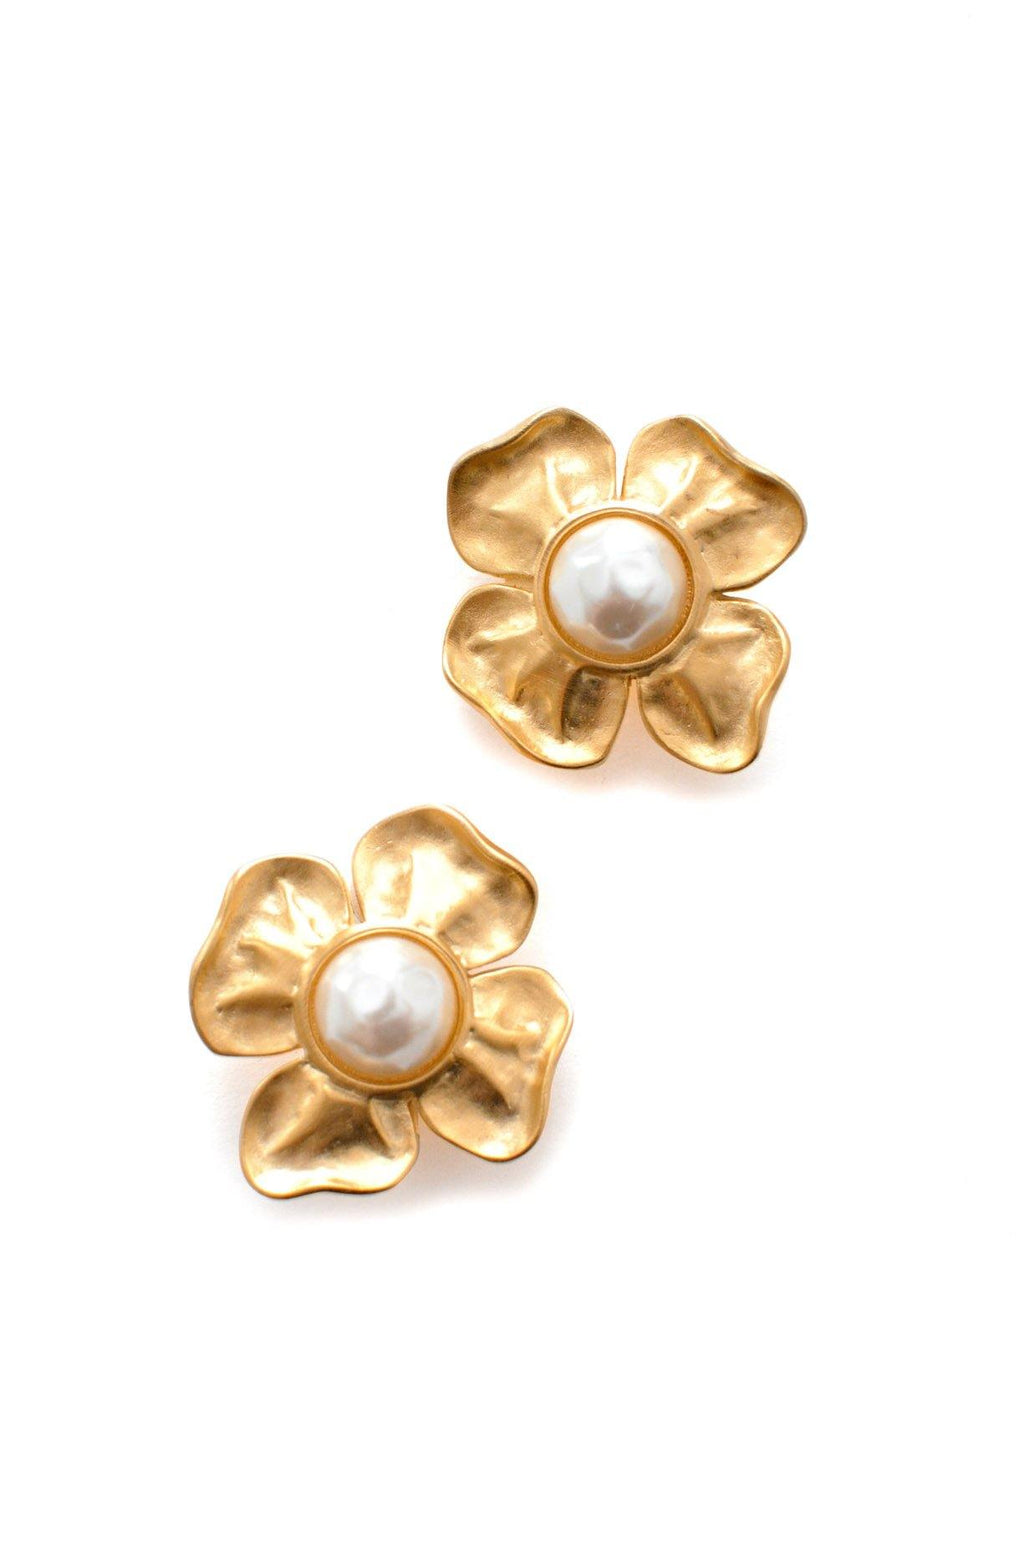 Givenchy Pearl Statement Clip-on Earrings